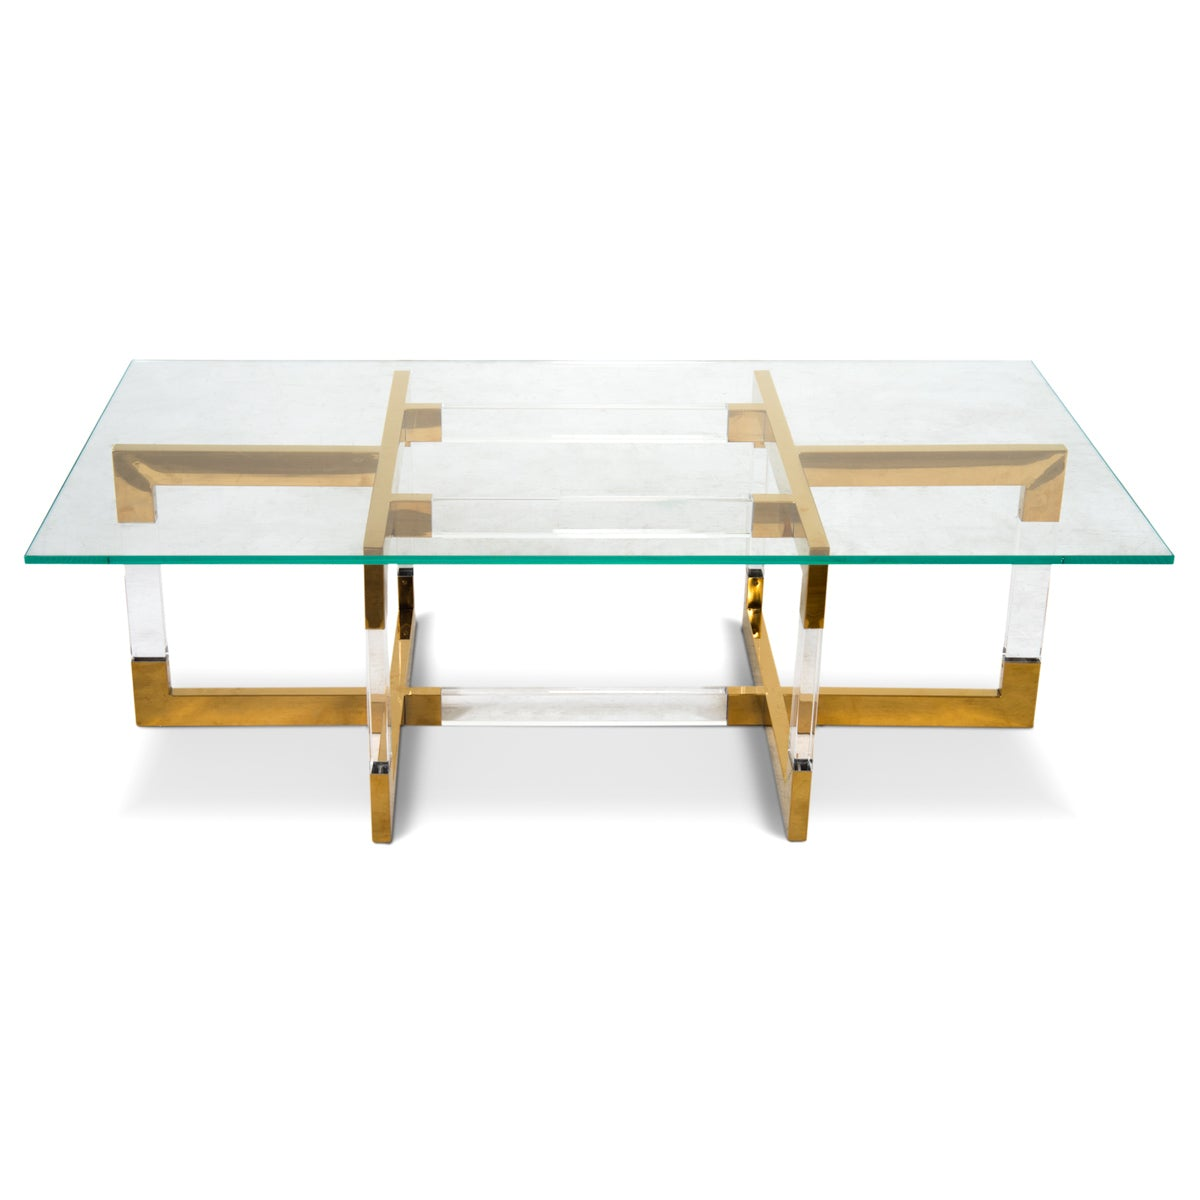 Trousdale 2 Coffee Table - ModShop1.com